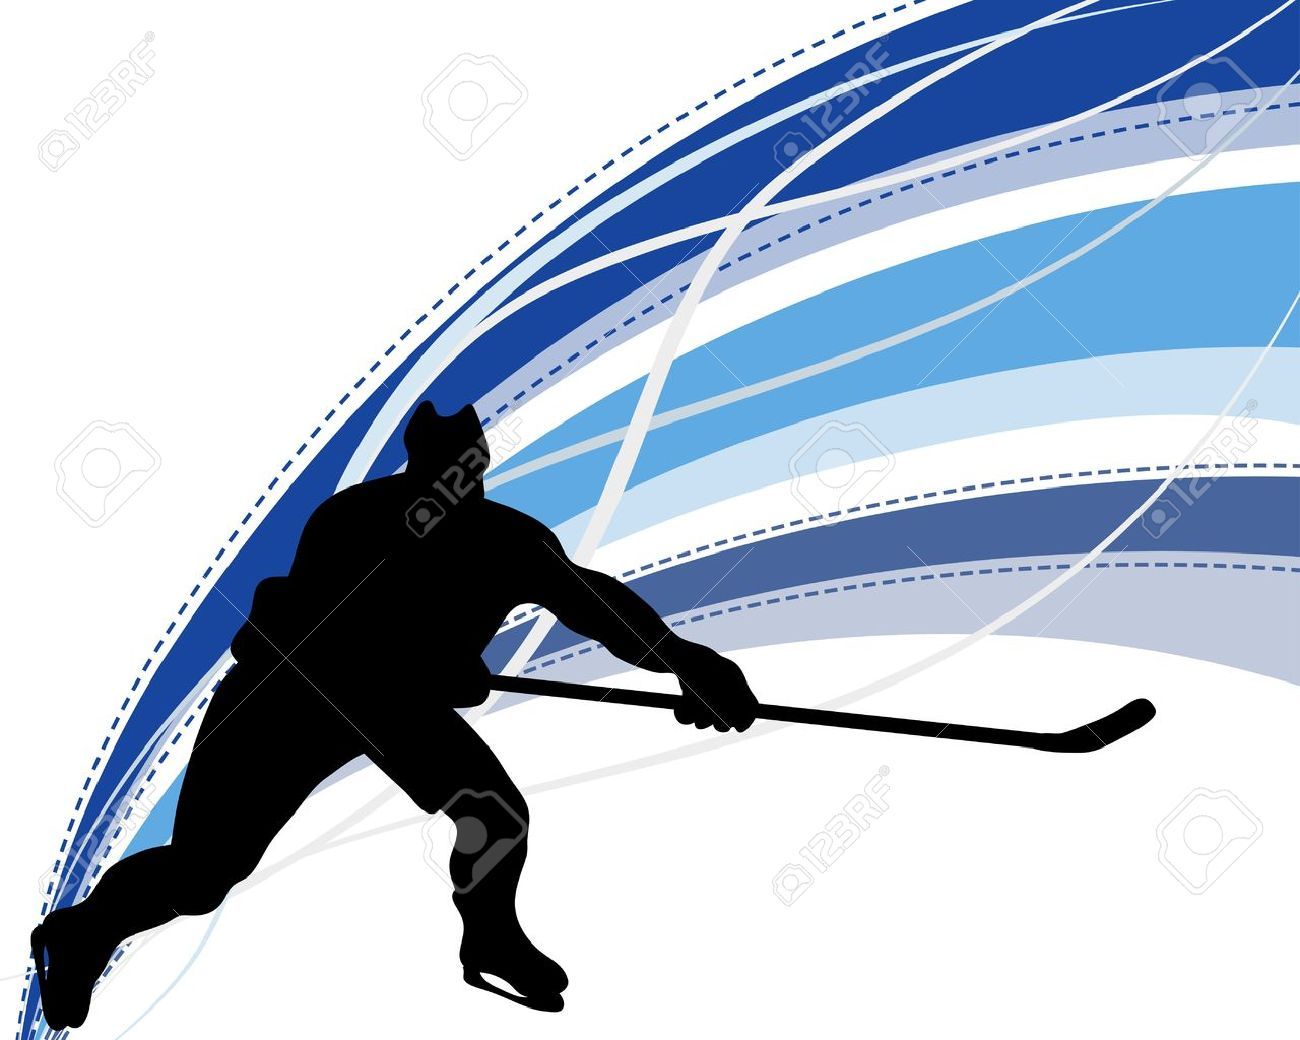 Hockey player silhouette with line background. illustration. Stock Vector - 15306900